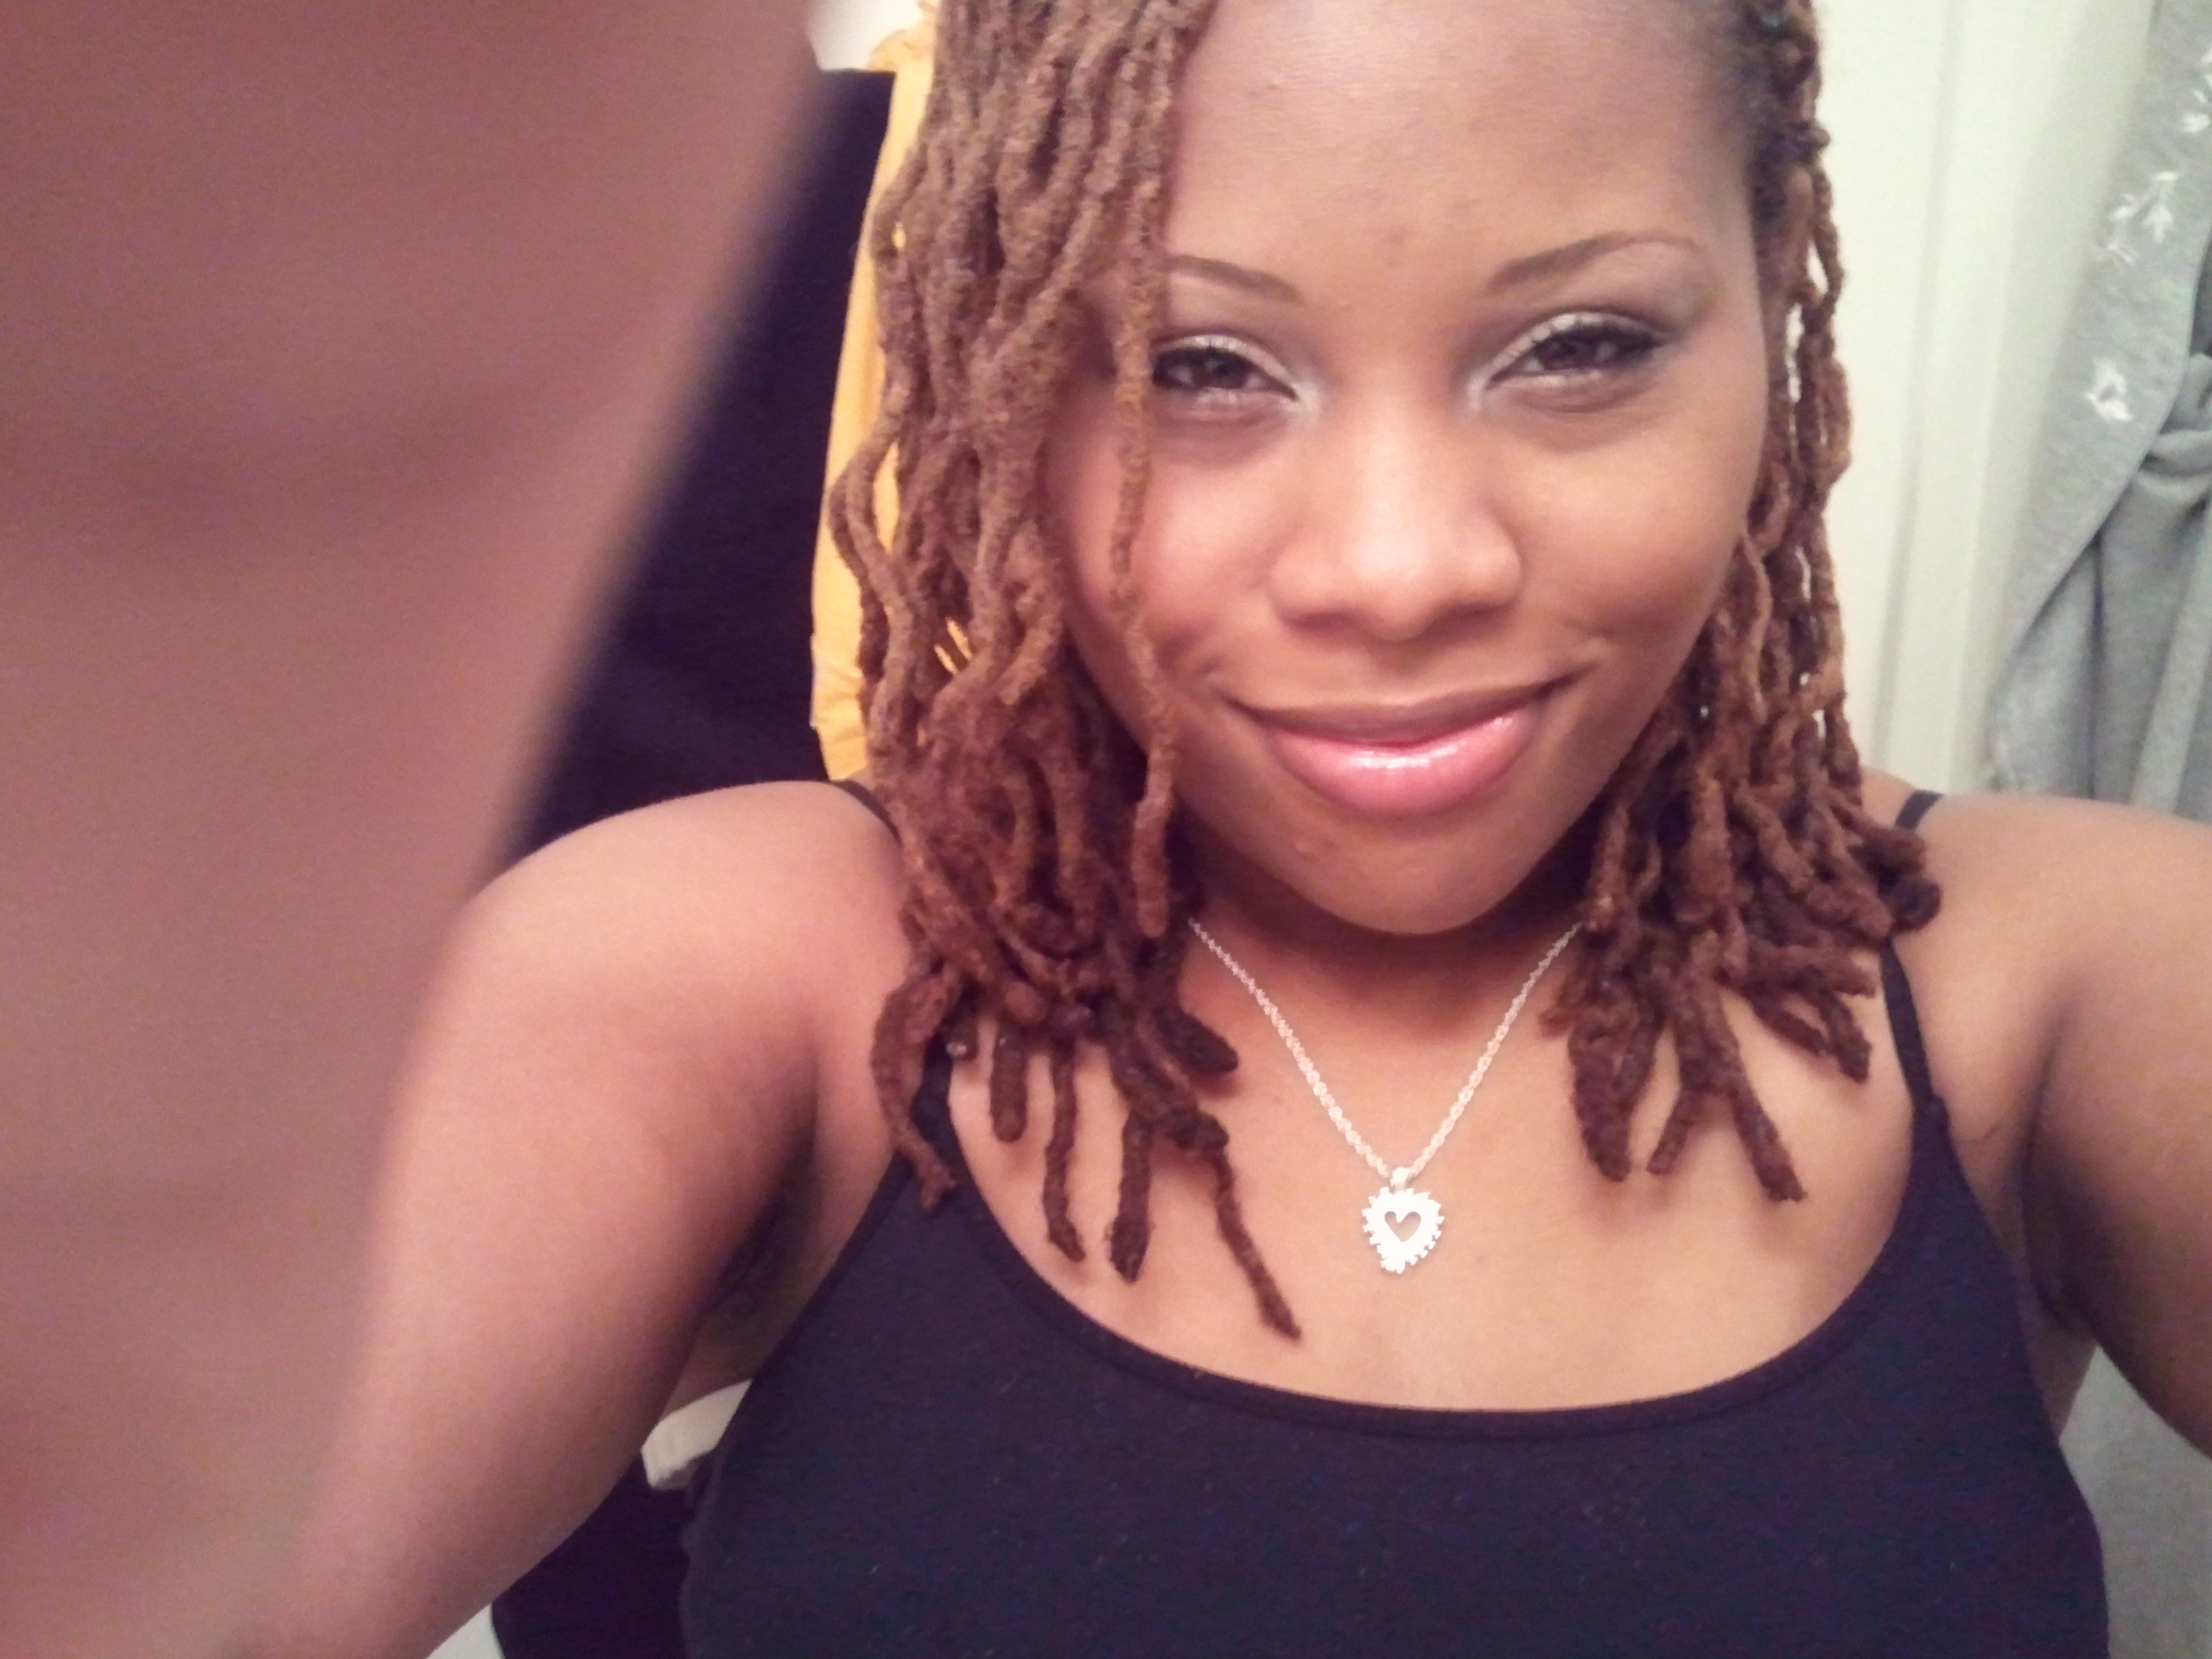 Loc D And Loving It Your Locs And Taking Care Of Your Pride